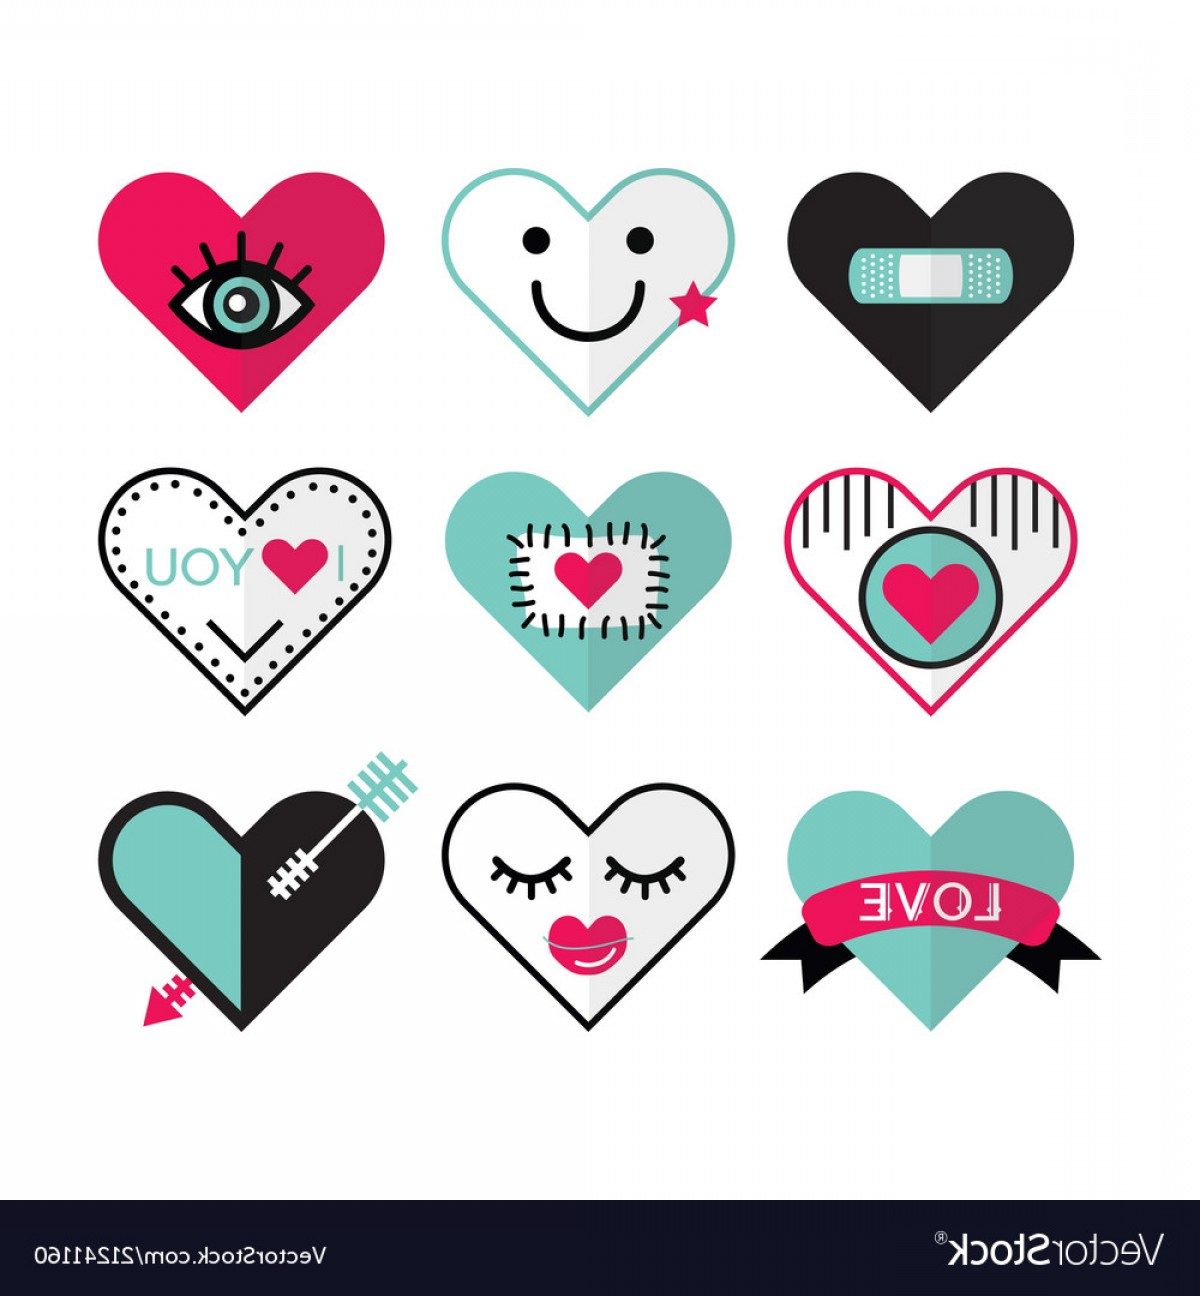 Vector Eyes At Ccute: Cute Heart And Love Icon Emblems Design Elements Vector